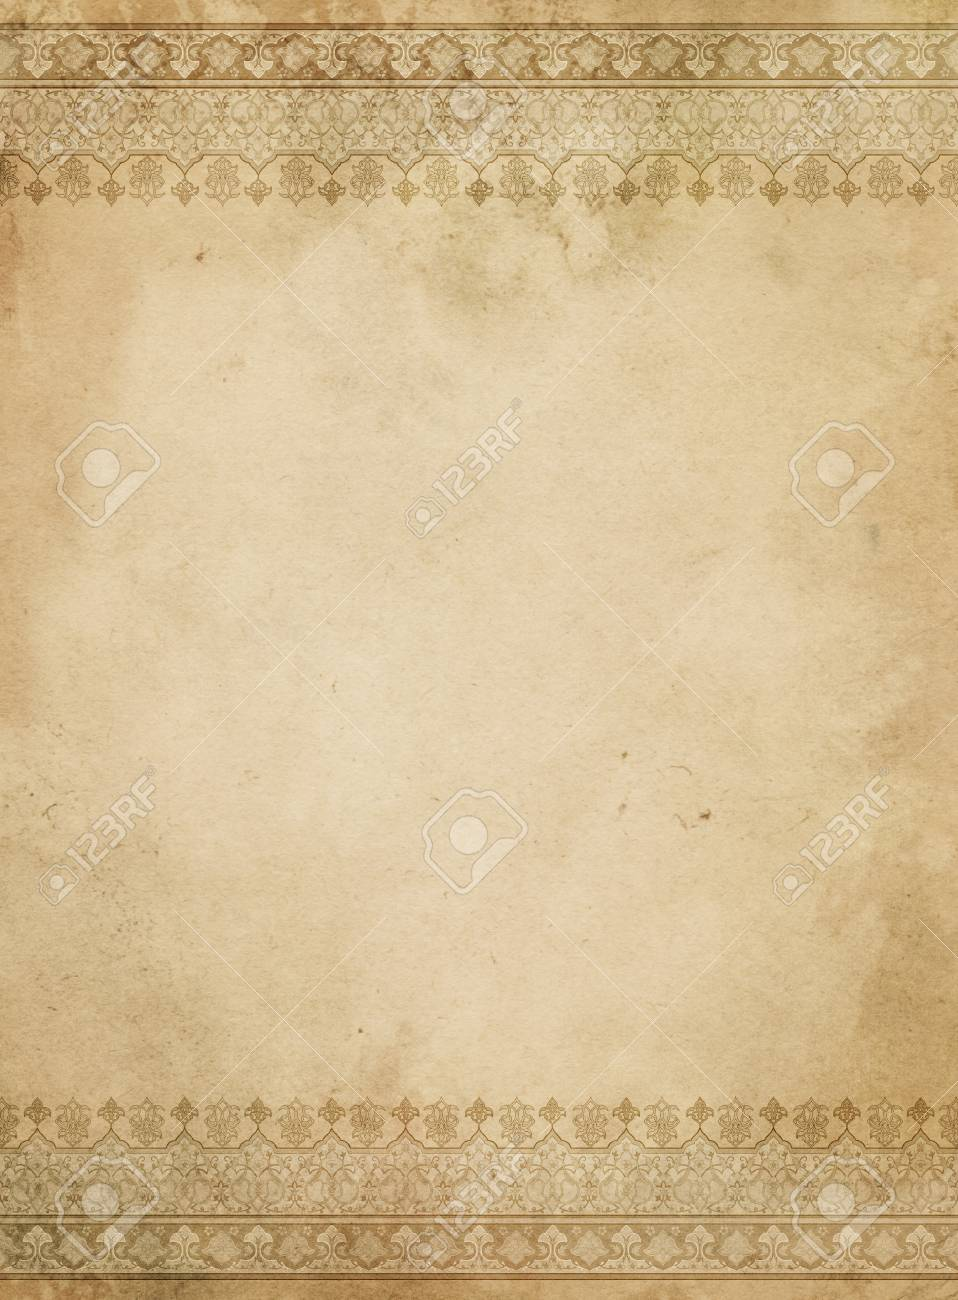 aged yellowed paper background with decorative vintage borders